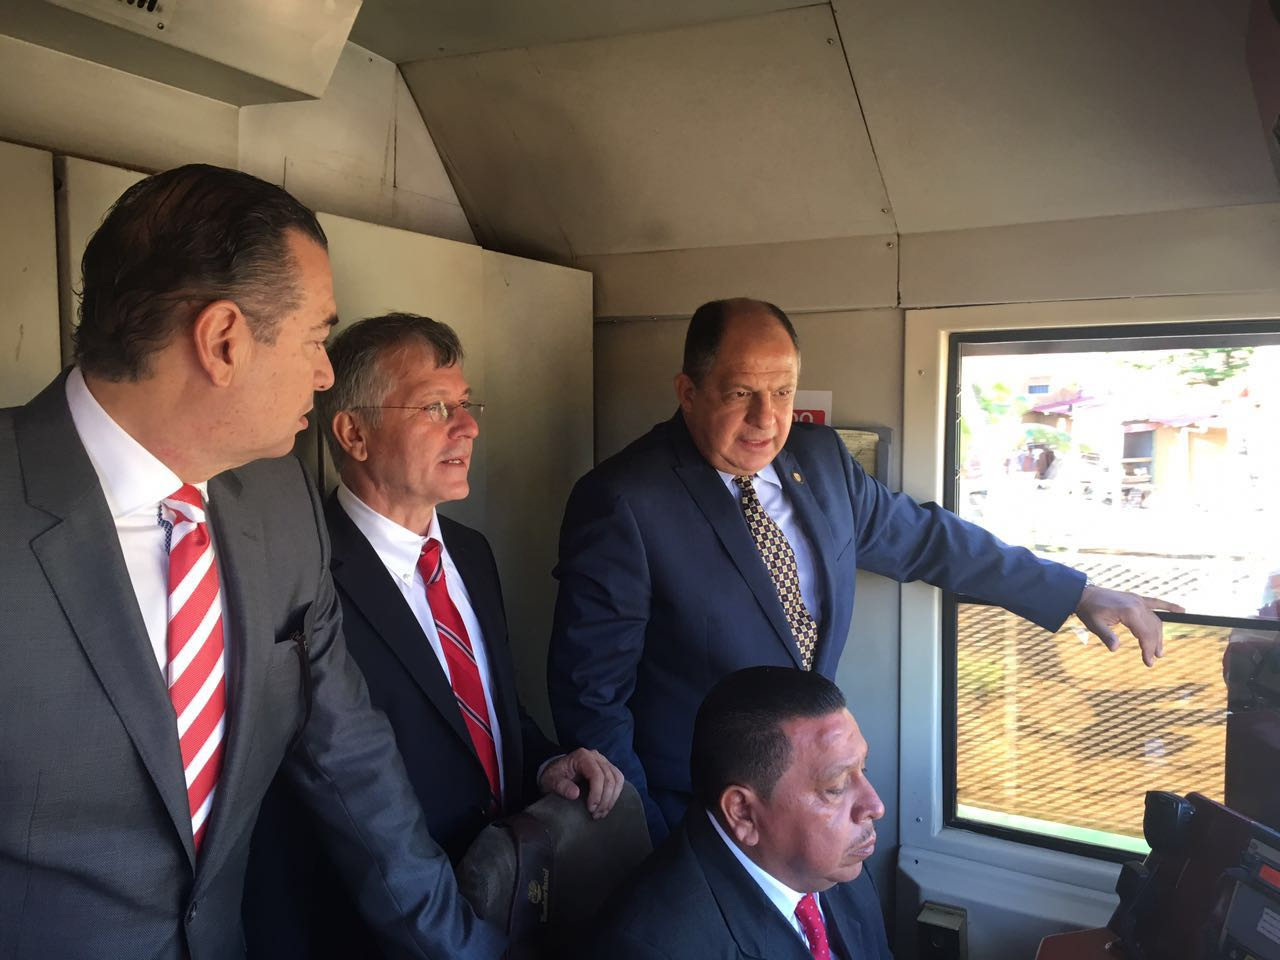 President Luis Guillermo Solis and aboard the train suspected of being